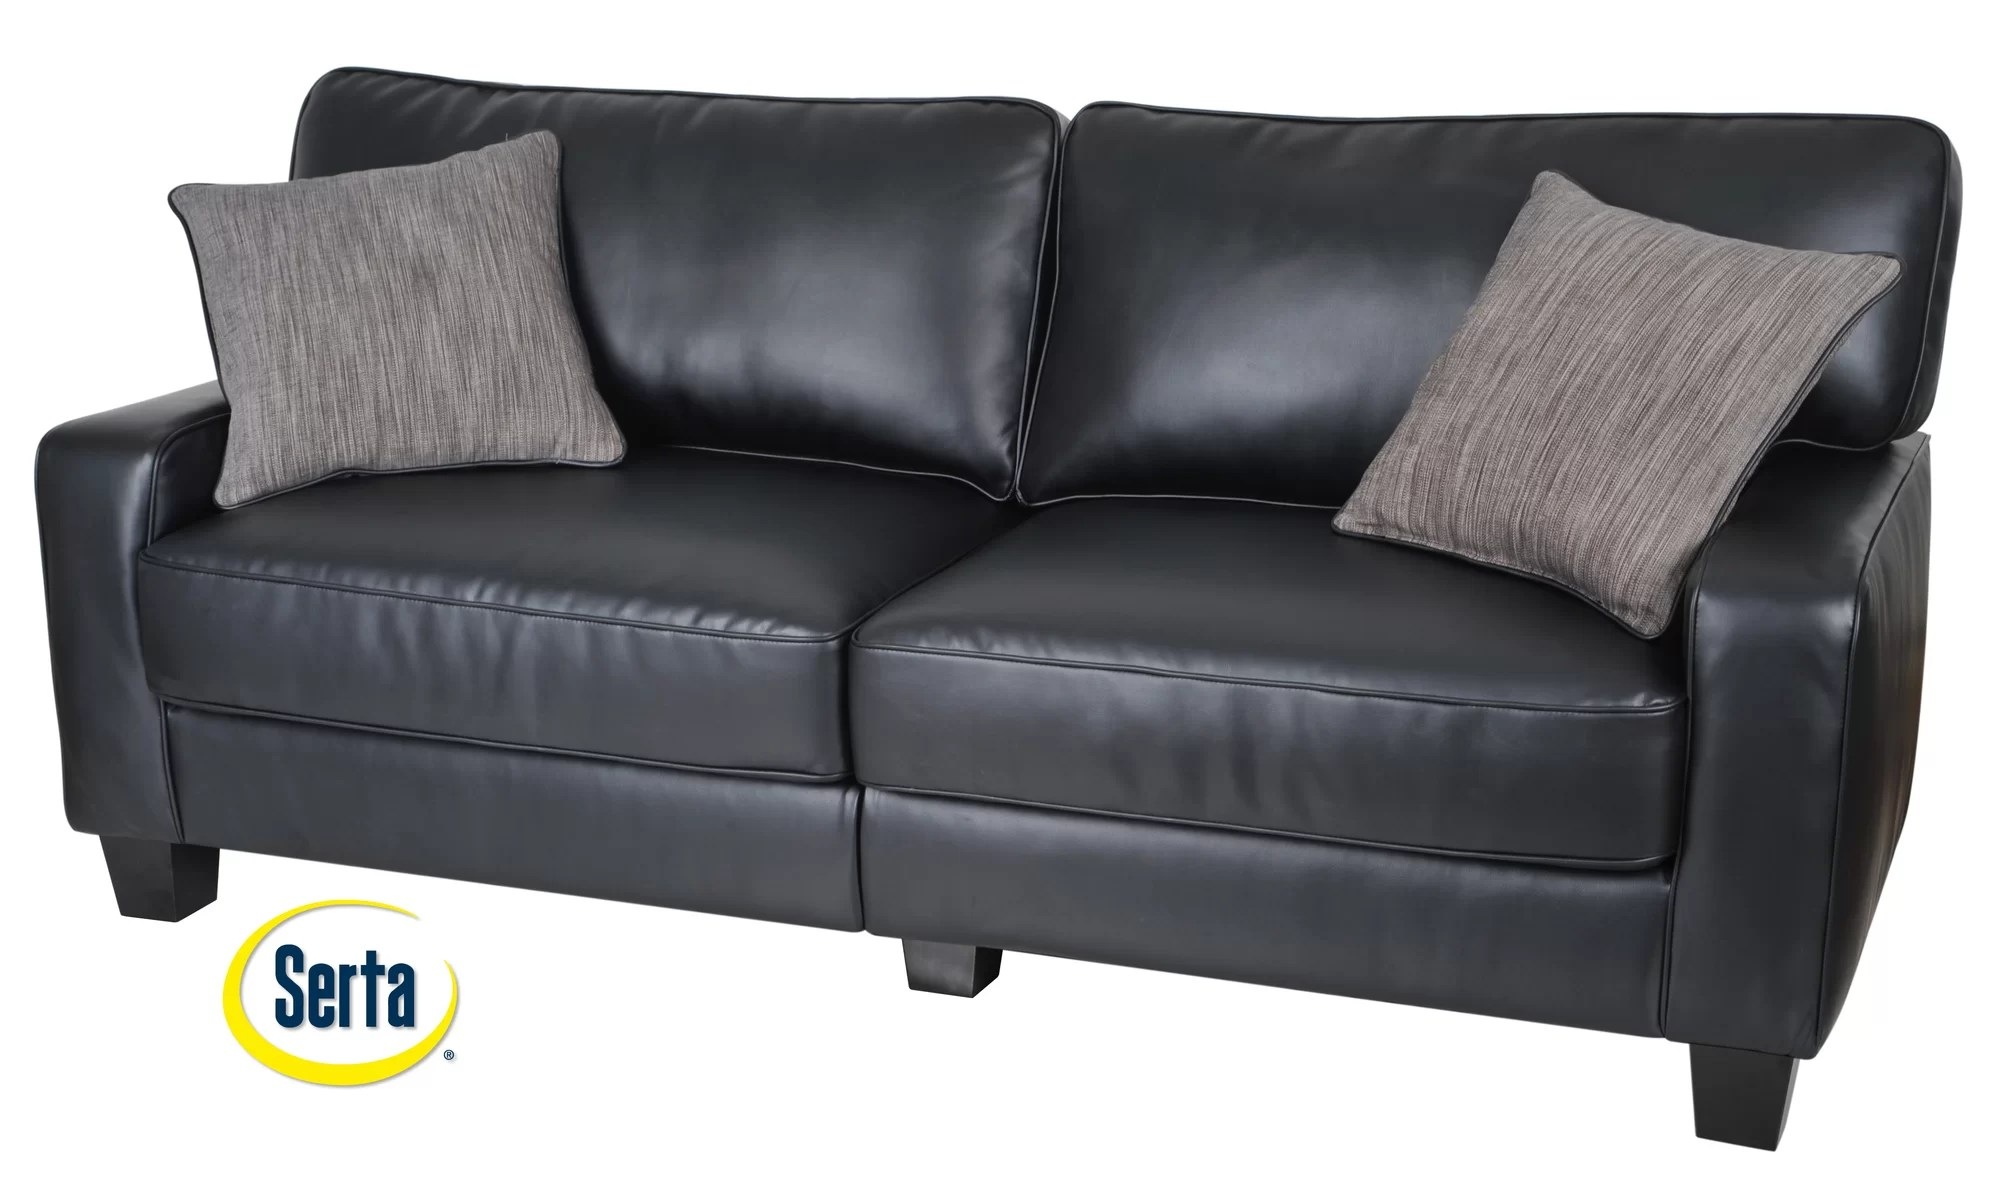 sofas on finance bad credit